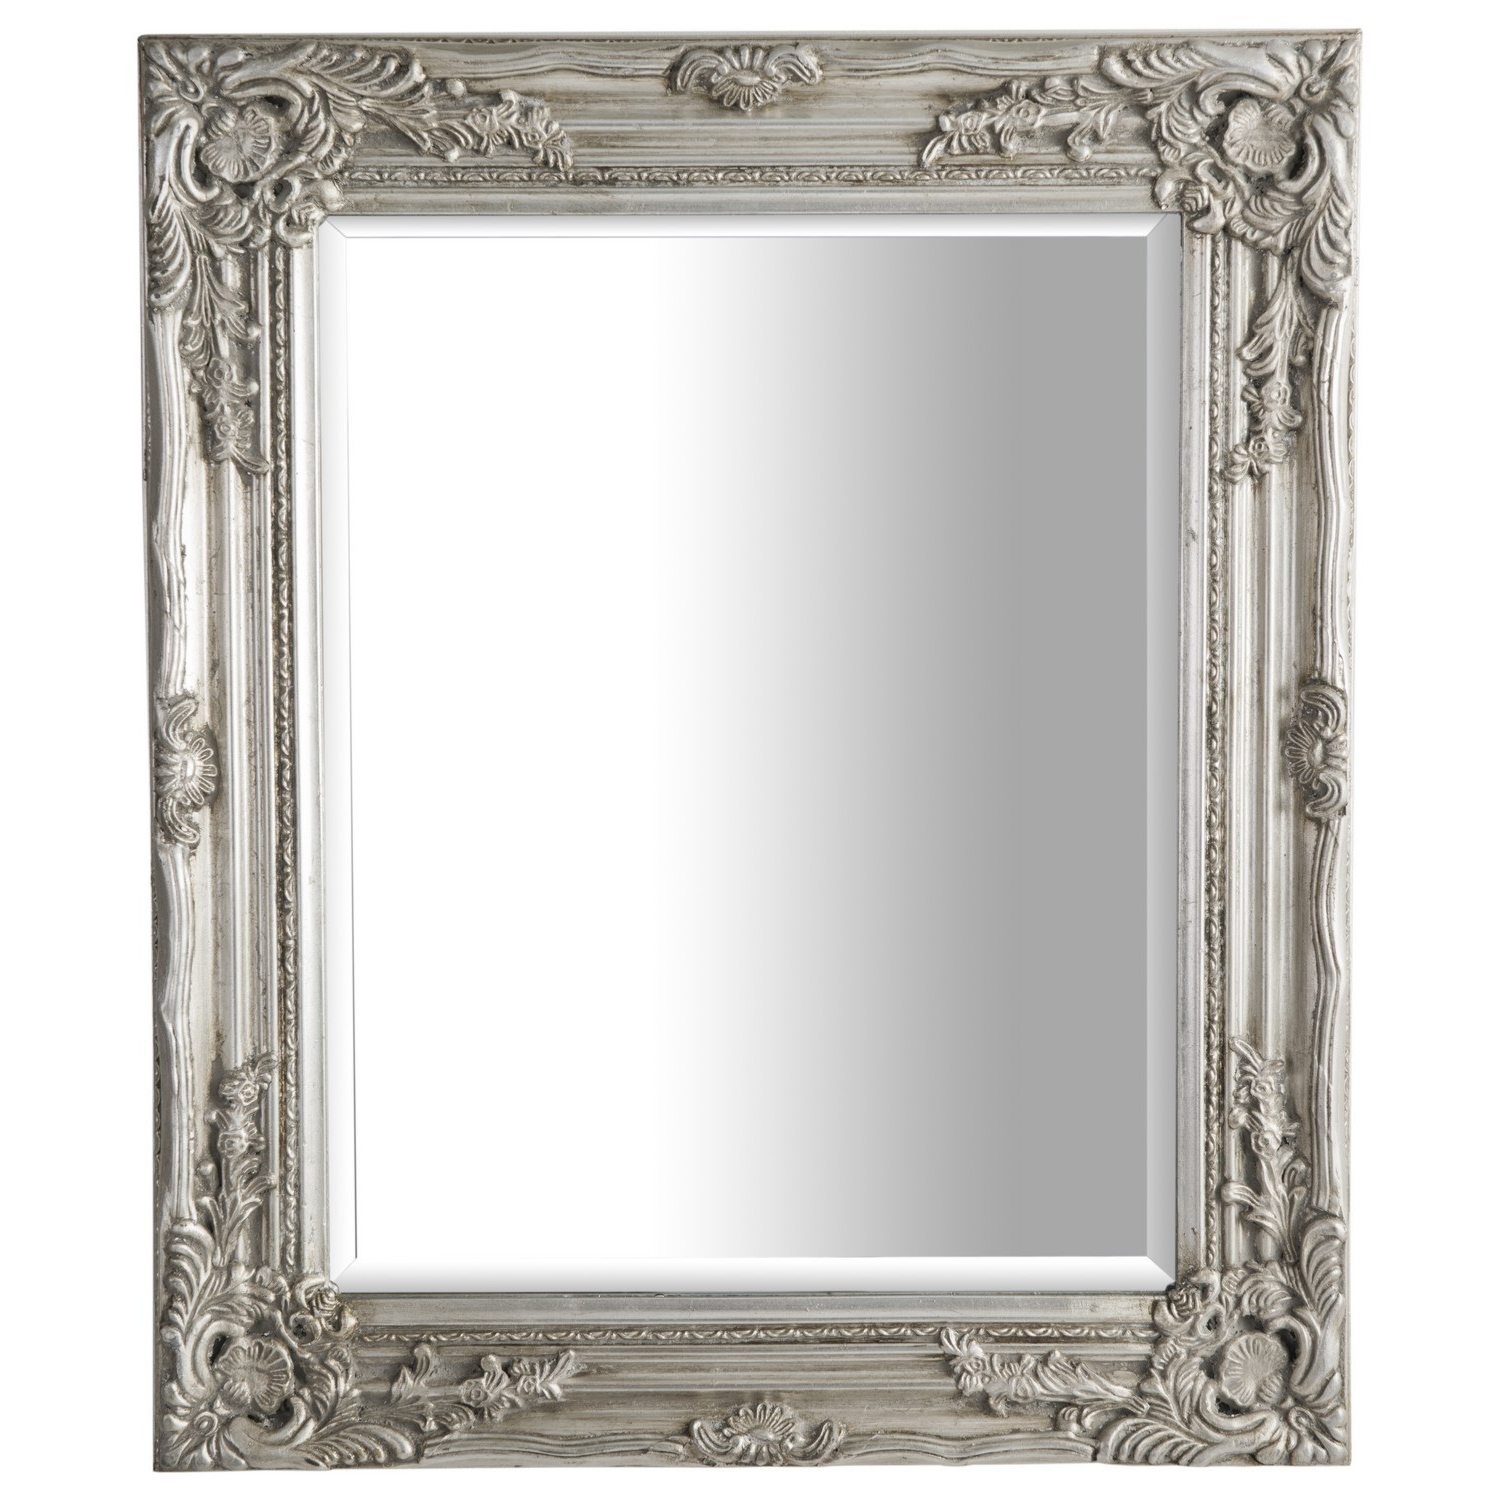 Well Liked Baroque Wall Mirrors For Silver Antique Ornate Mirror (View 19 of 20)